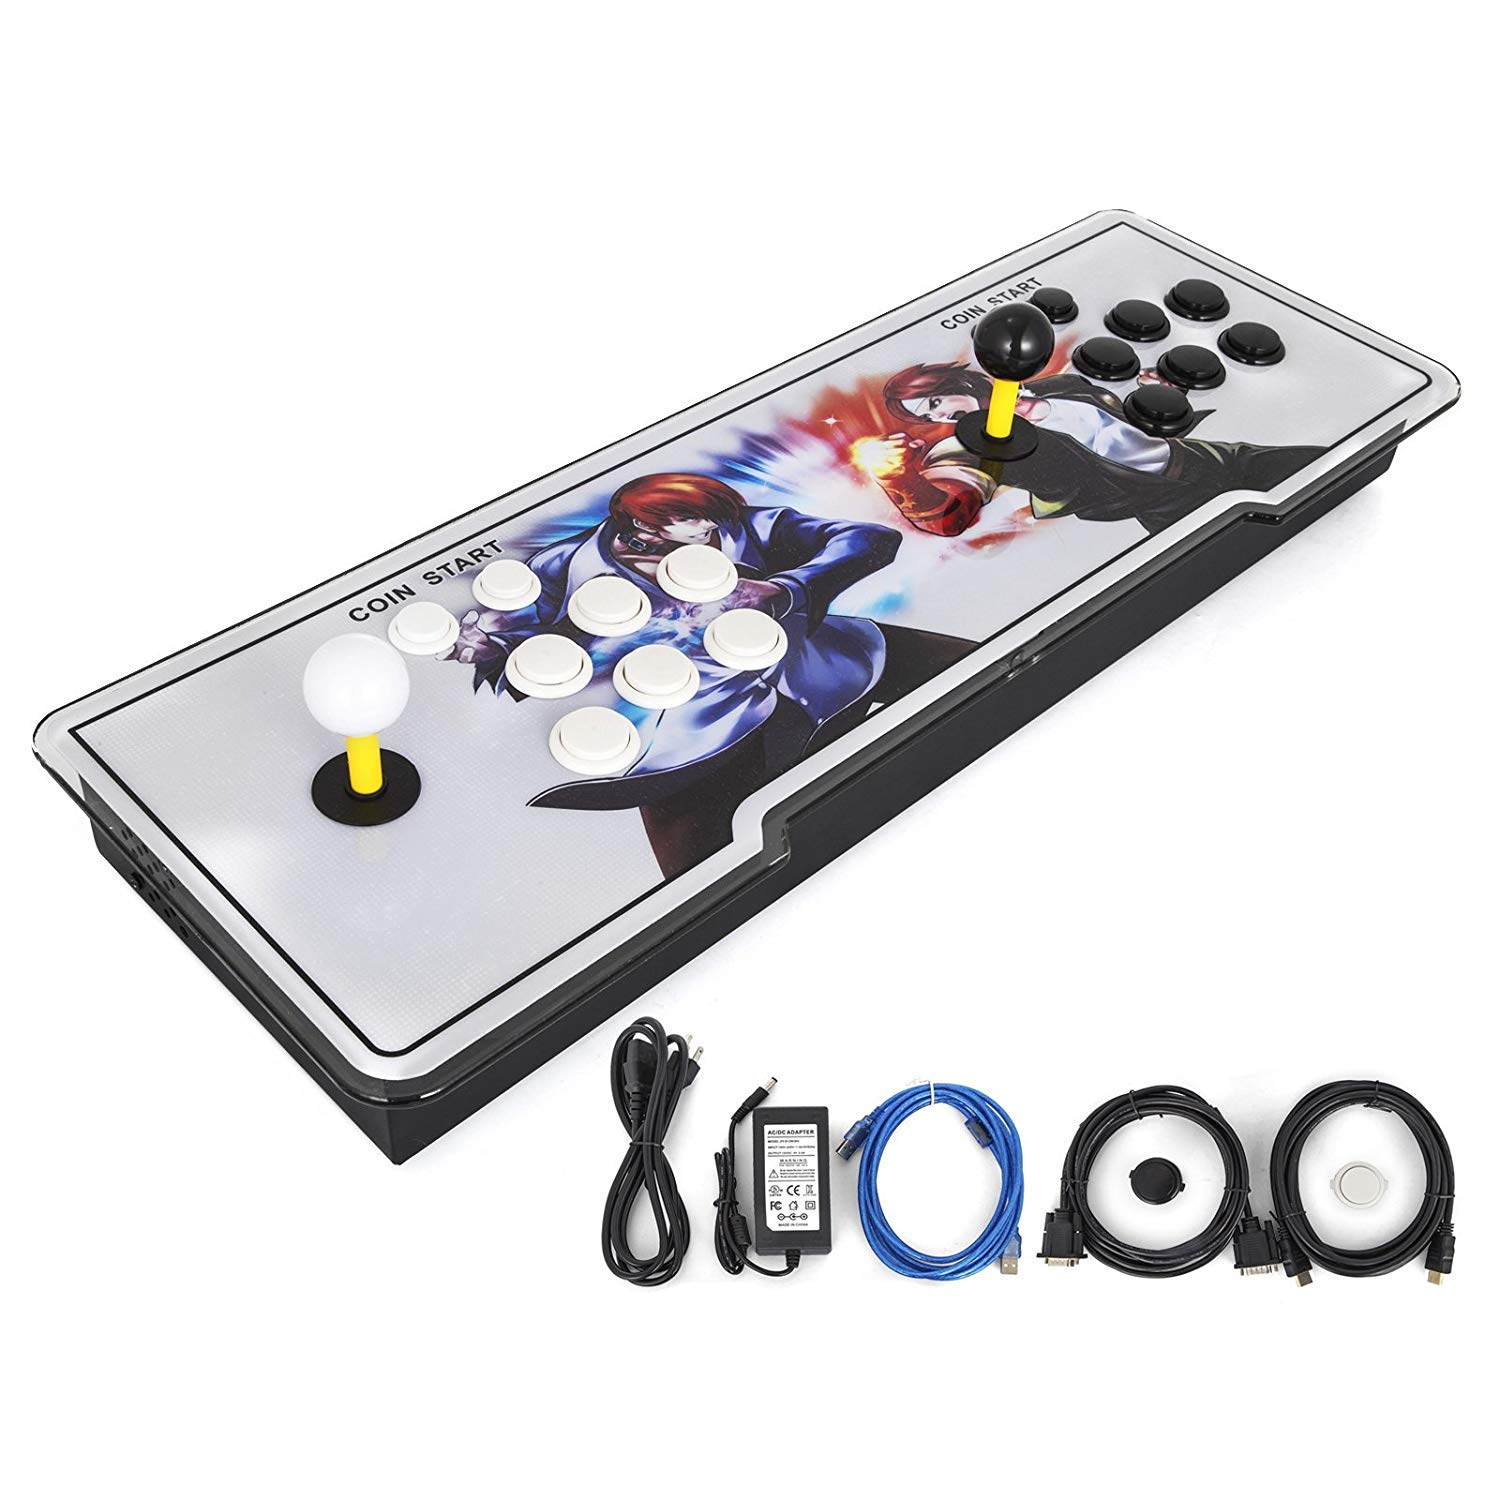 Happybuy Pandora Box 2222 in 1 Arcade Console 9S+ Pandoras Box 2 Players Retro Arcade Station x Full HD Video Game Console with Arcade Joystick Support HDMI VGA USB by Happybuy (Image #8)